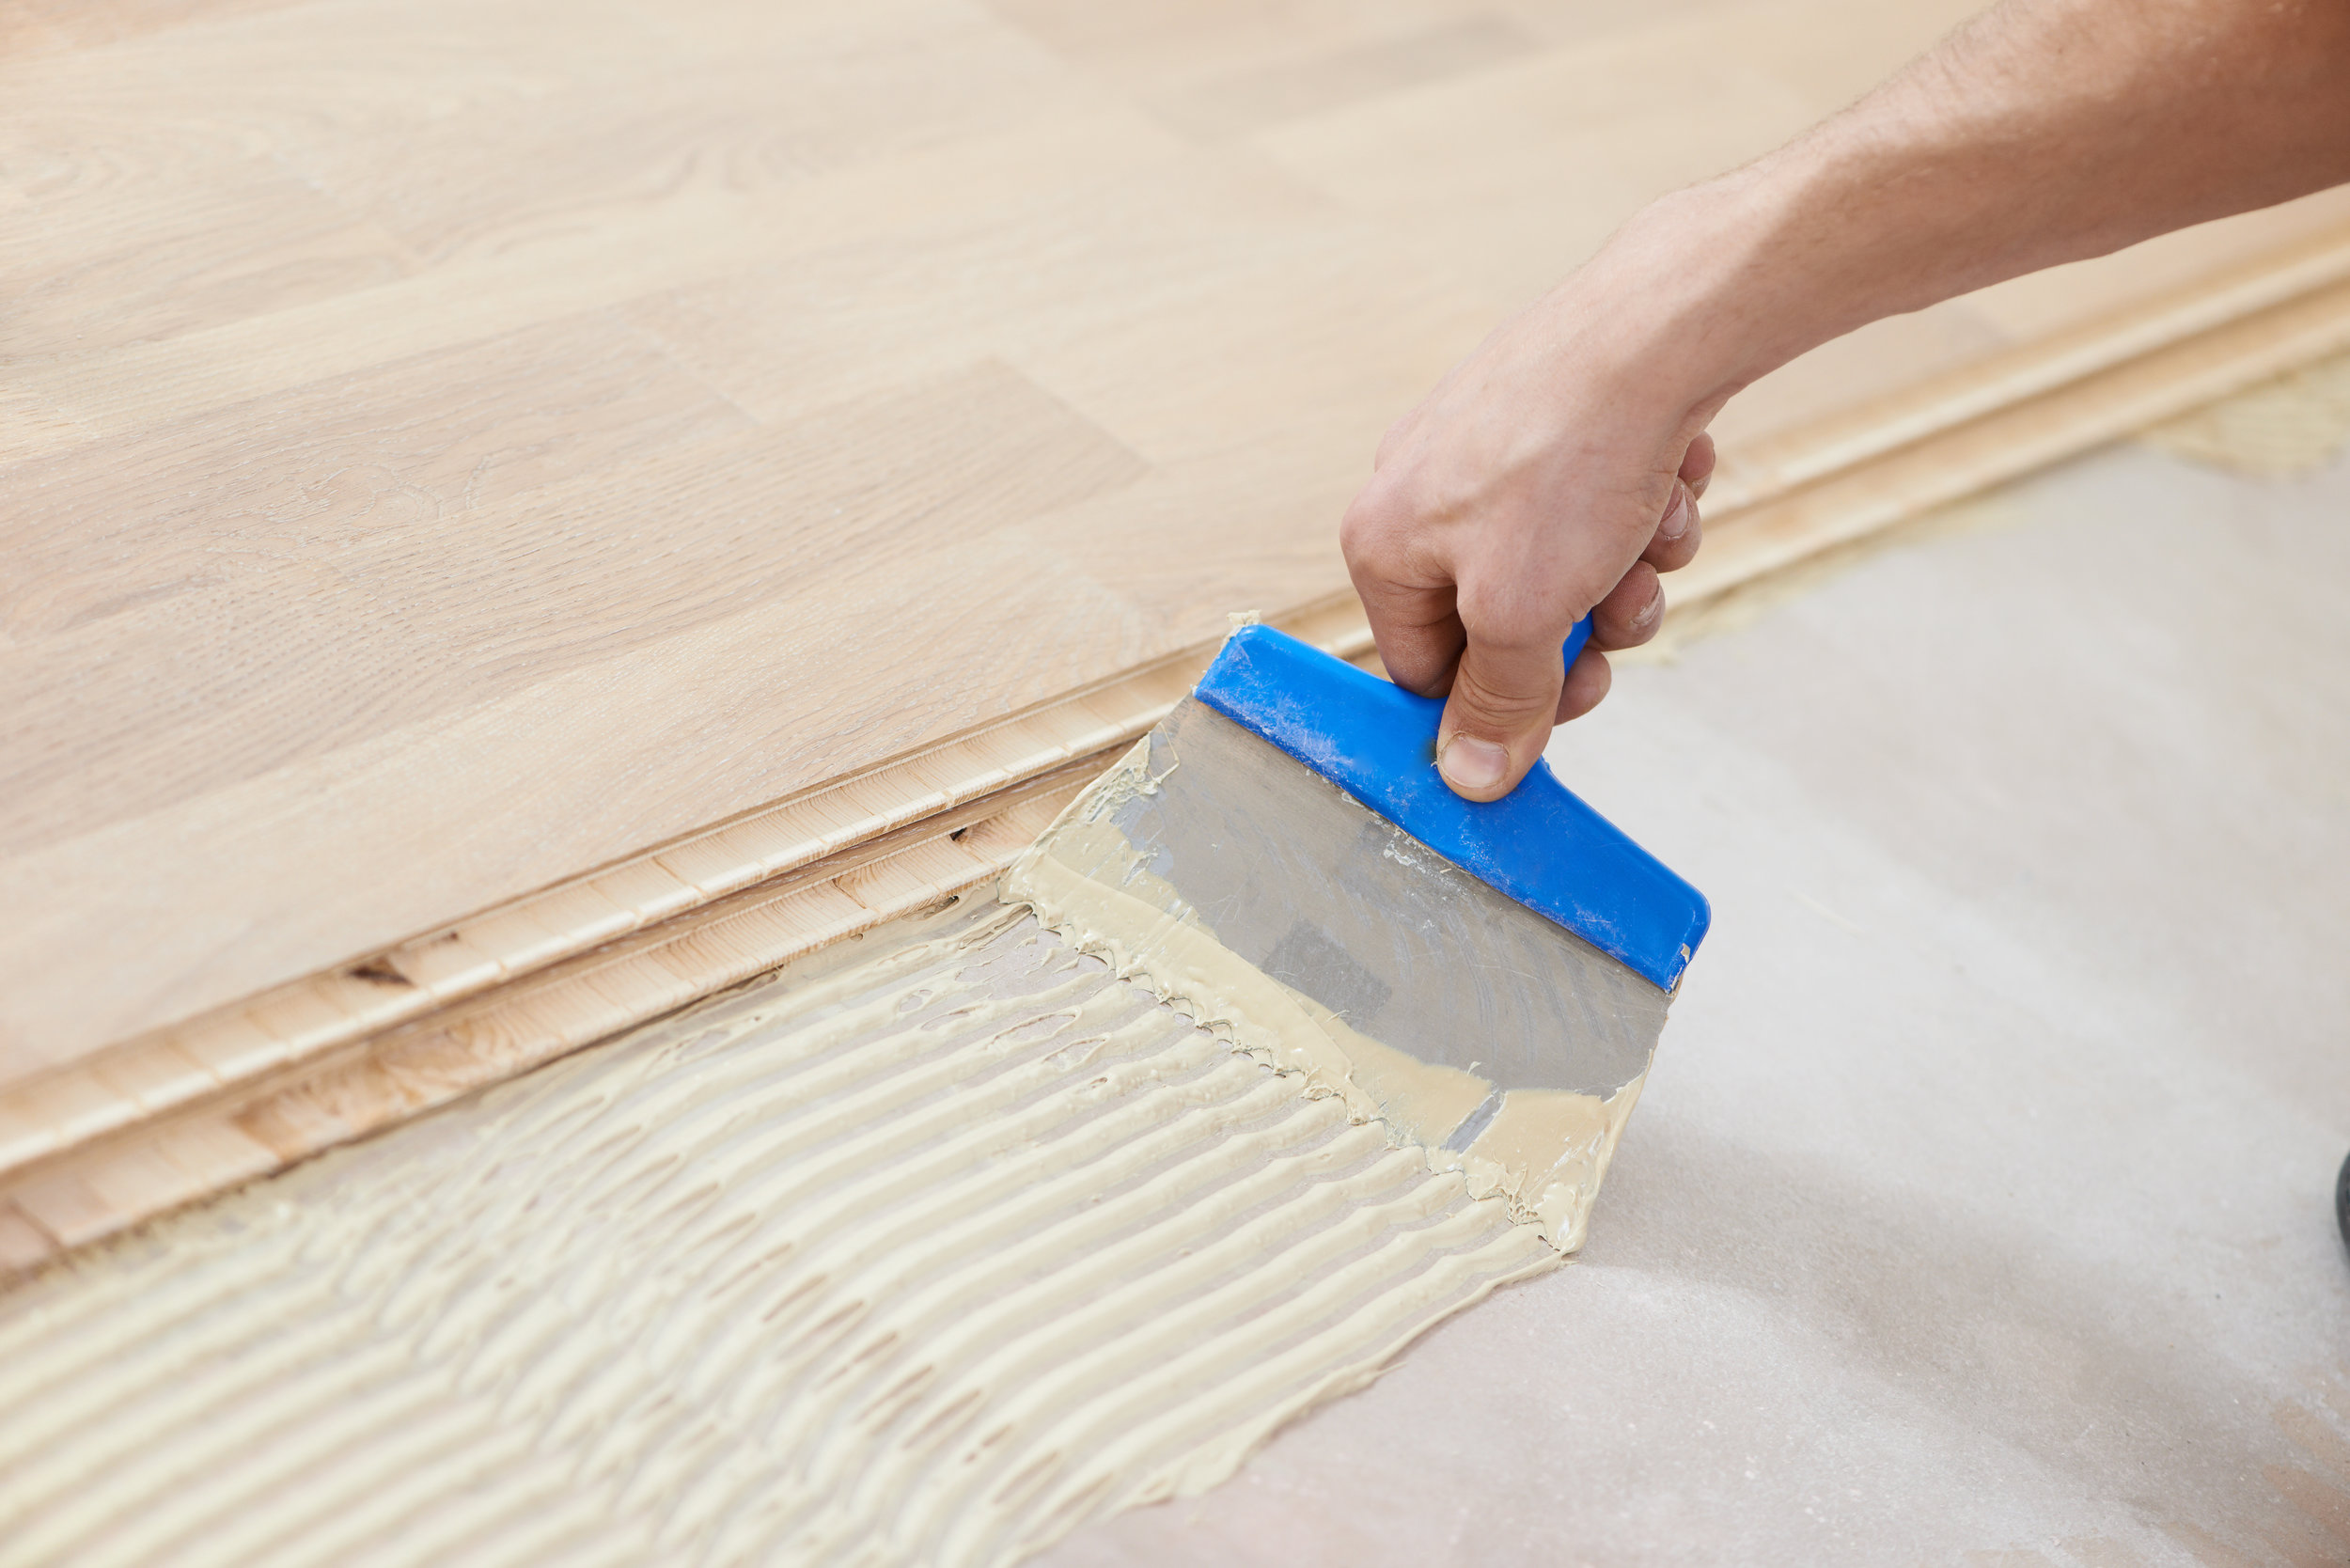 Wood Flooring, What Adhesive To Use For Laminate Flooring